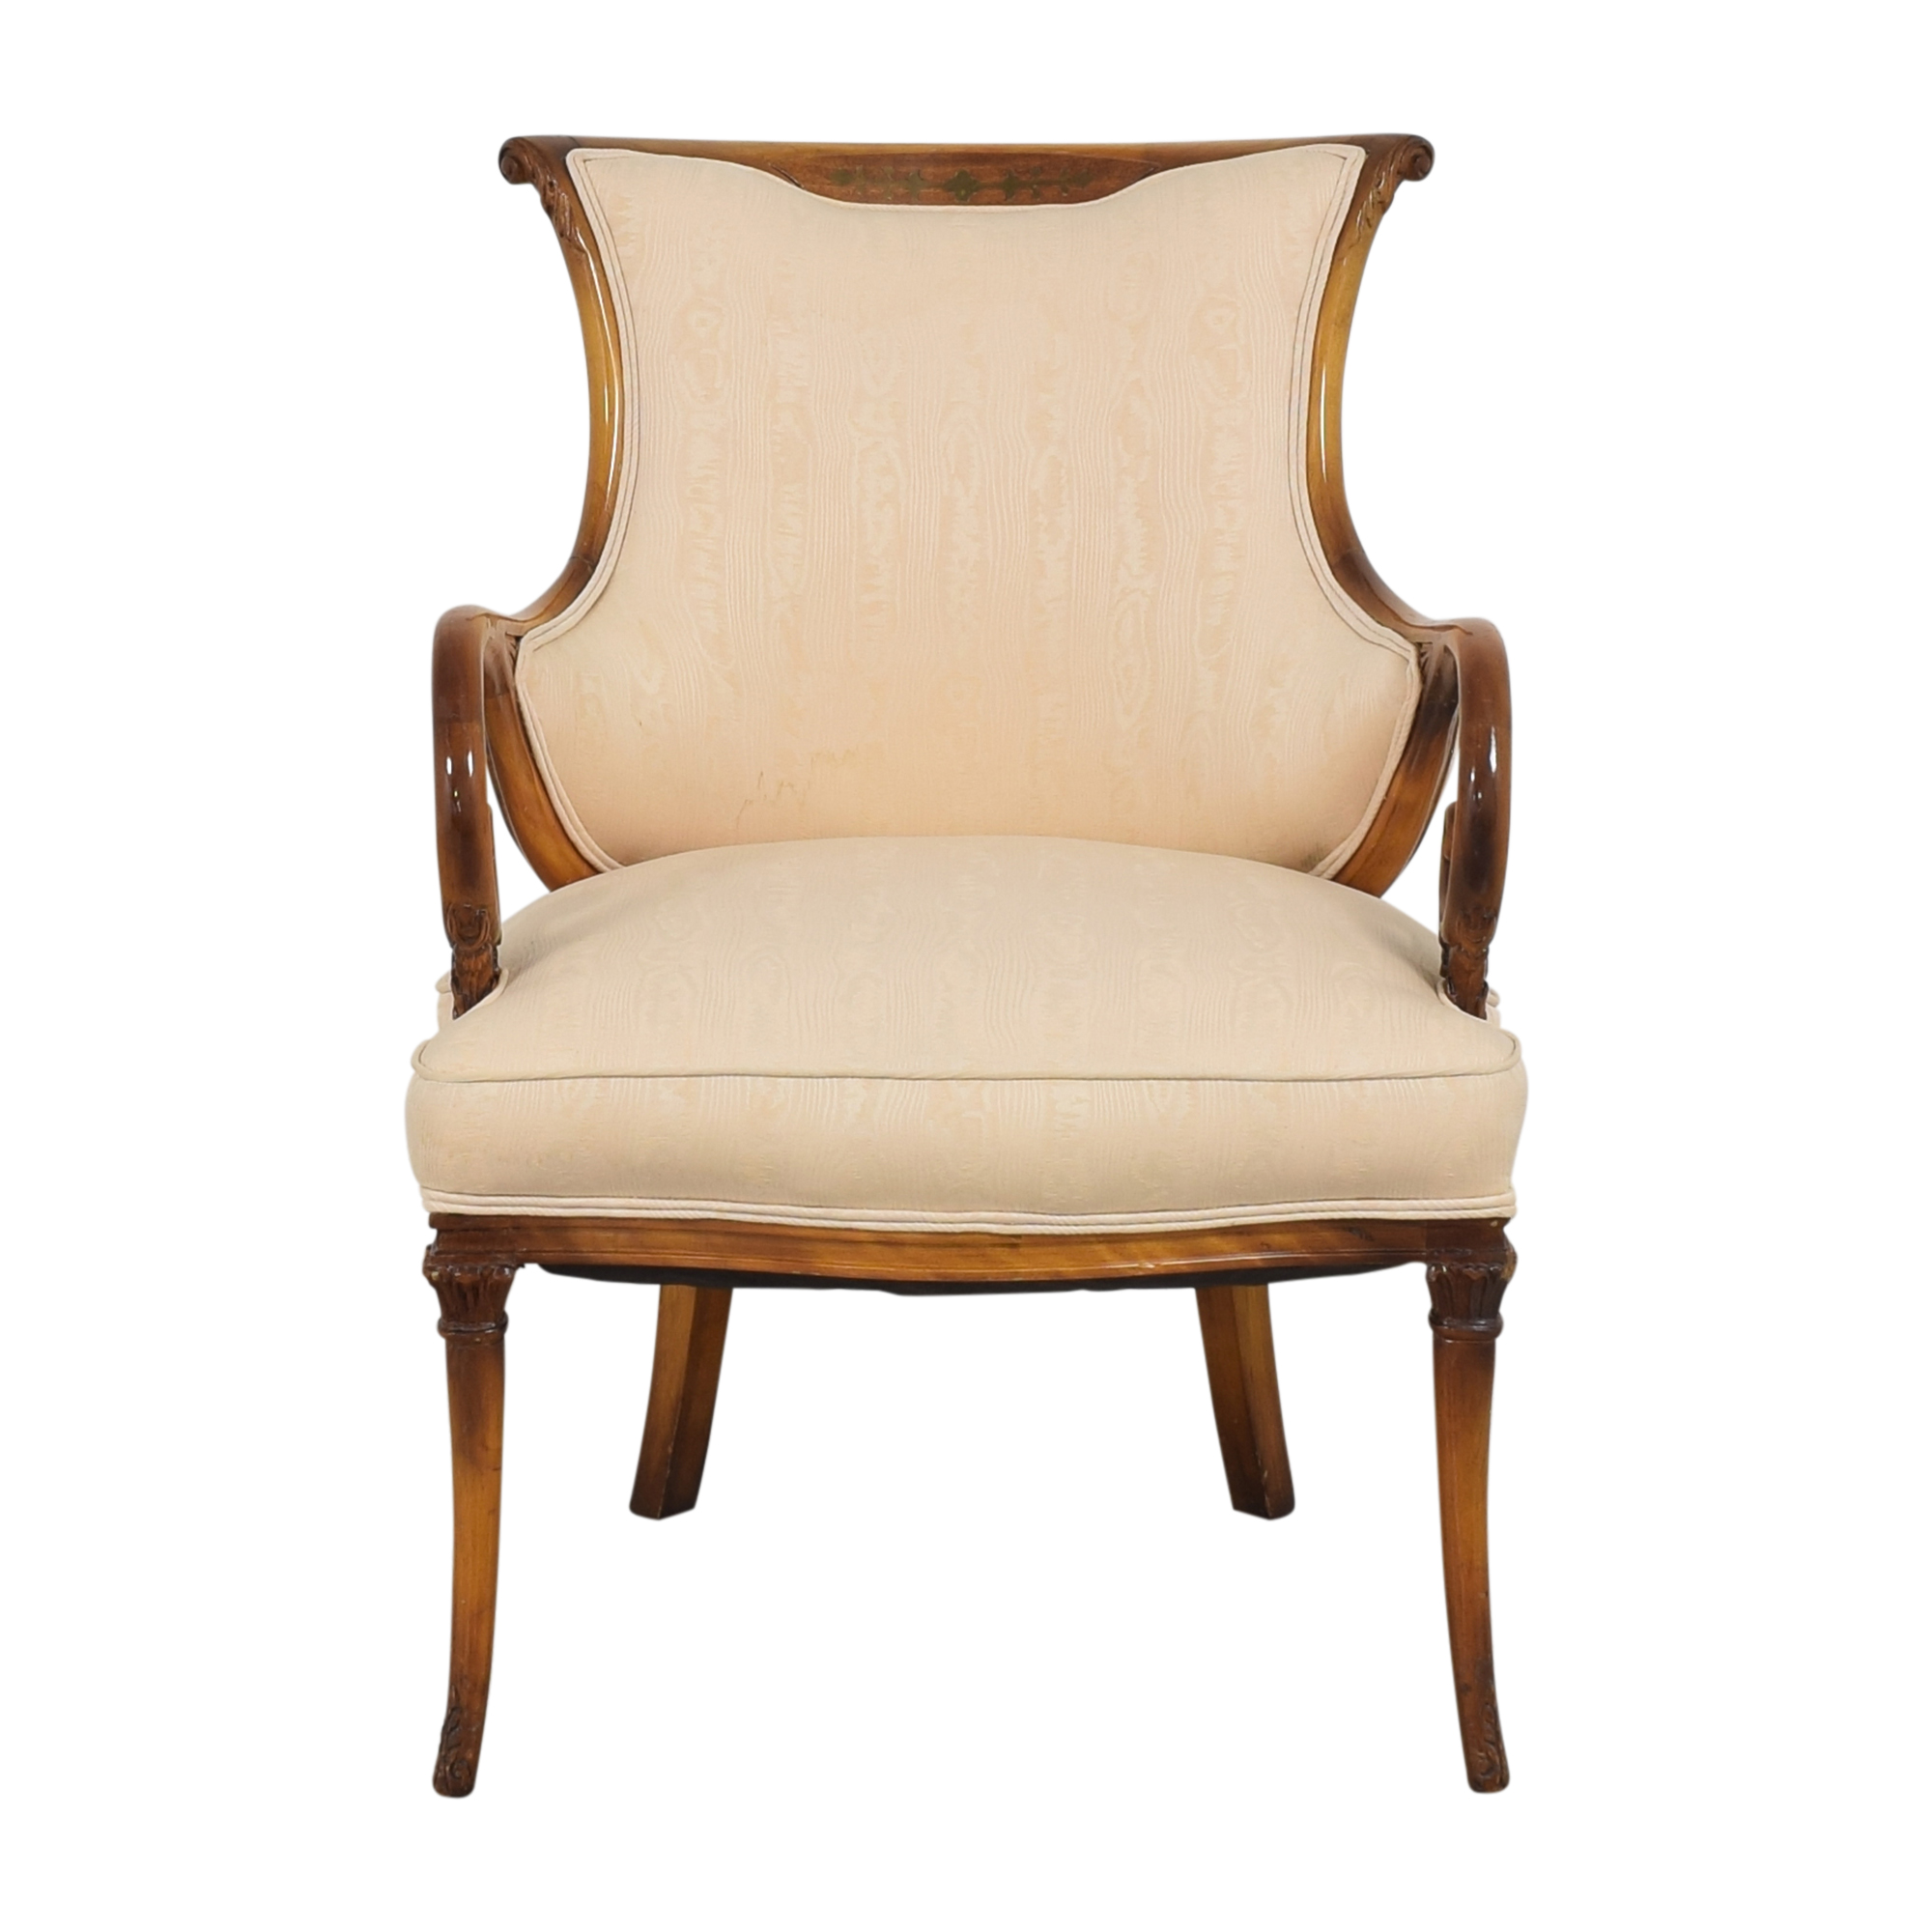 Decorative Upholstered Arm Chair sale